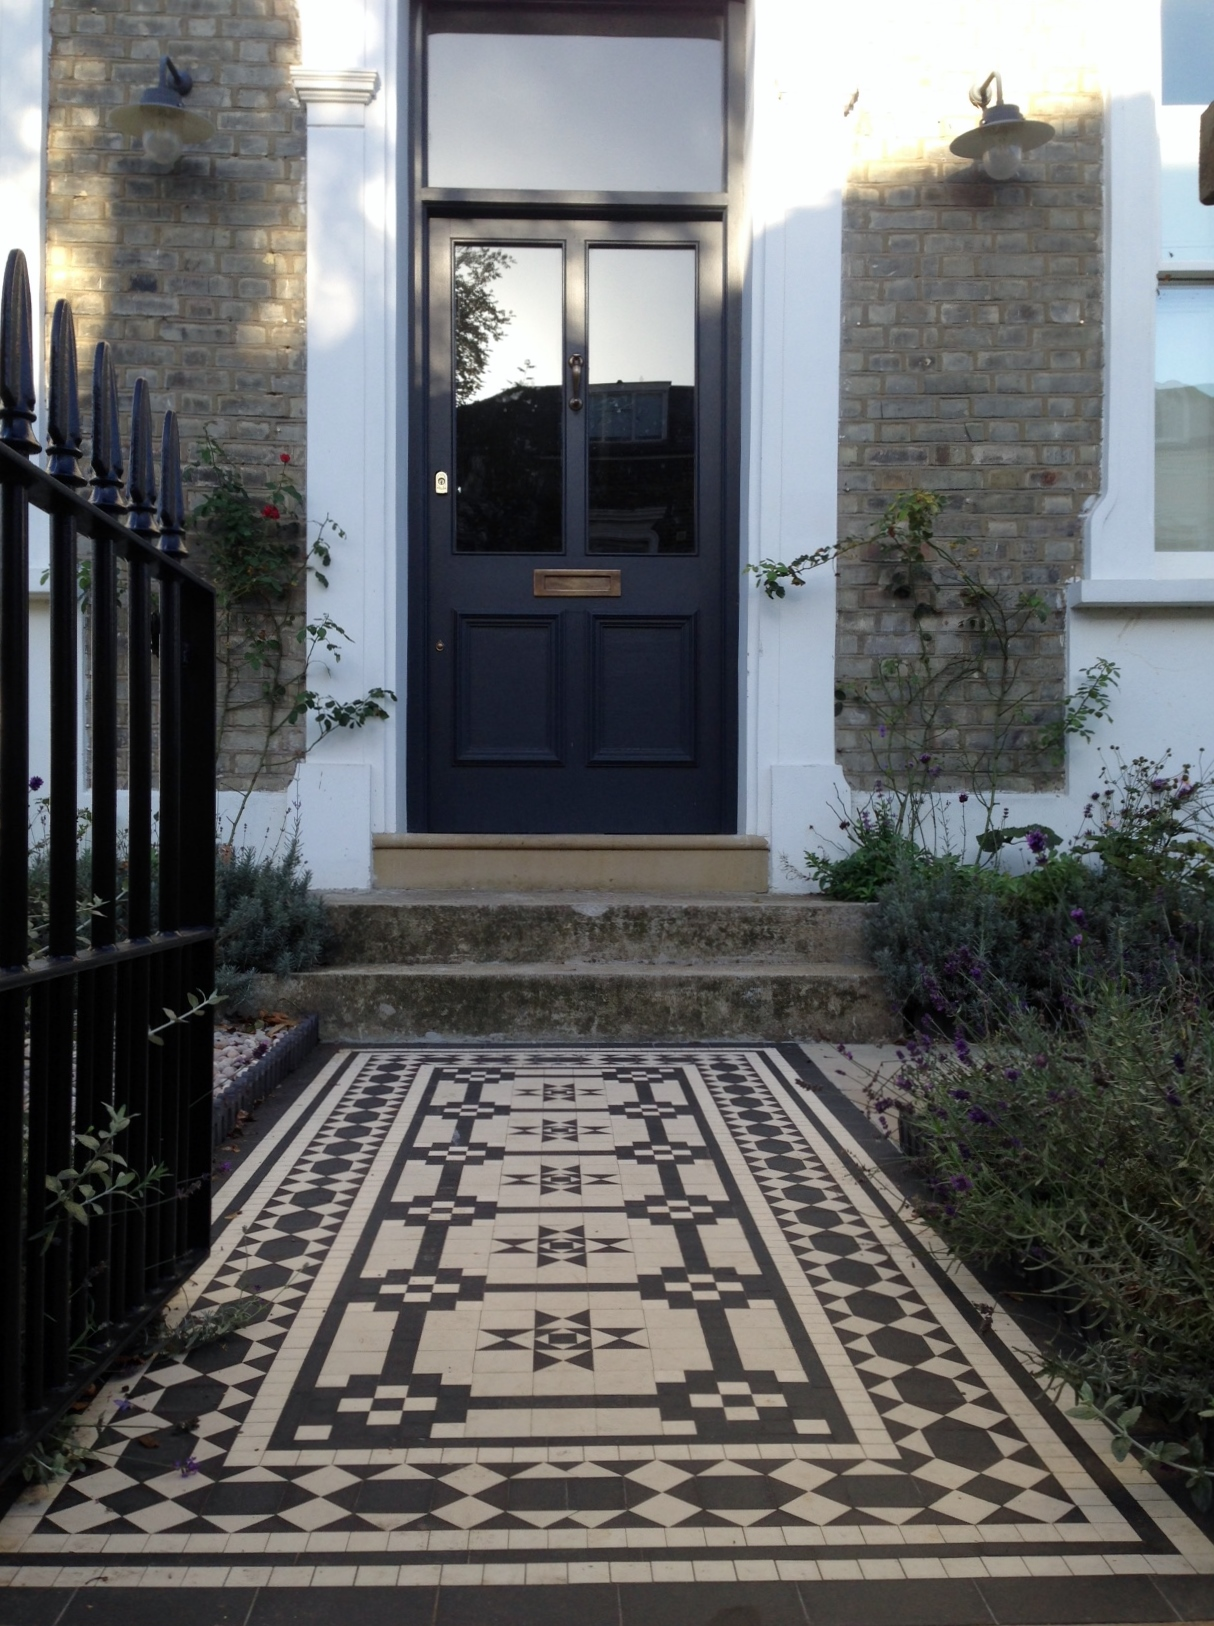 Islington Victorian mosaic tile path York stone sandstone paving wrought iron rails and gate London (46)